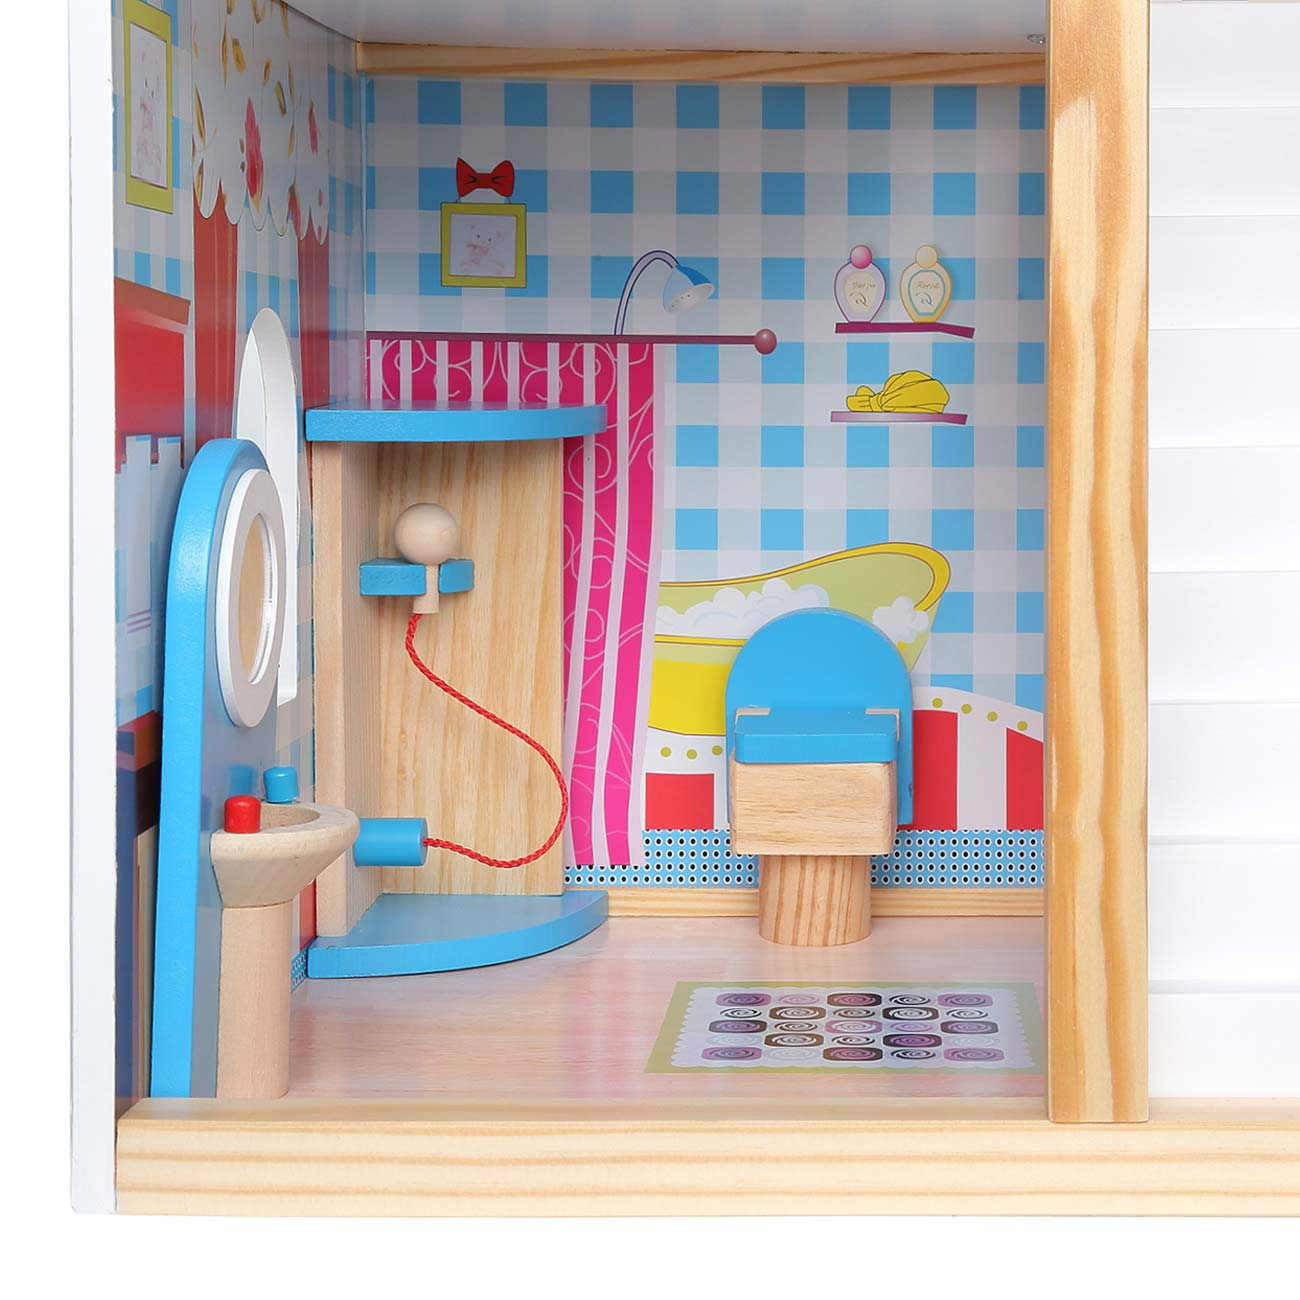 baby vivo puppenhaus rosalie aus holz mit zubeh r baby kind spielzeug puppenh user. Black Bedroom Furniture Sets. Home Design Ideas